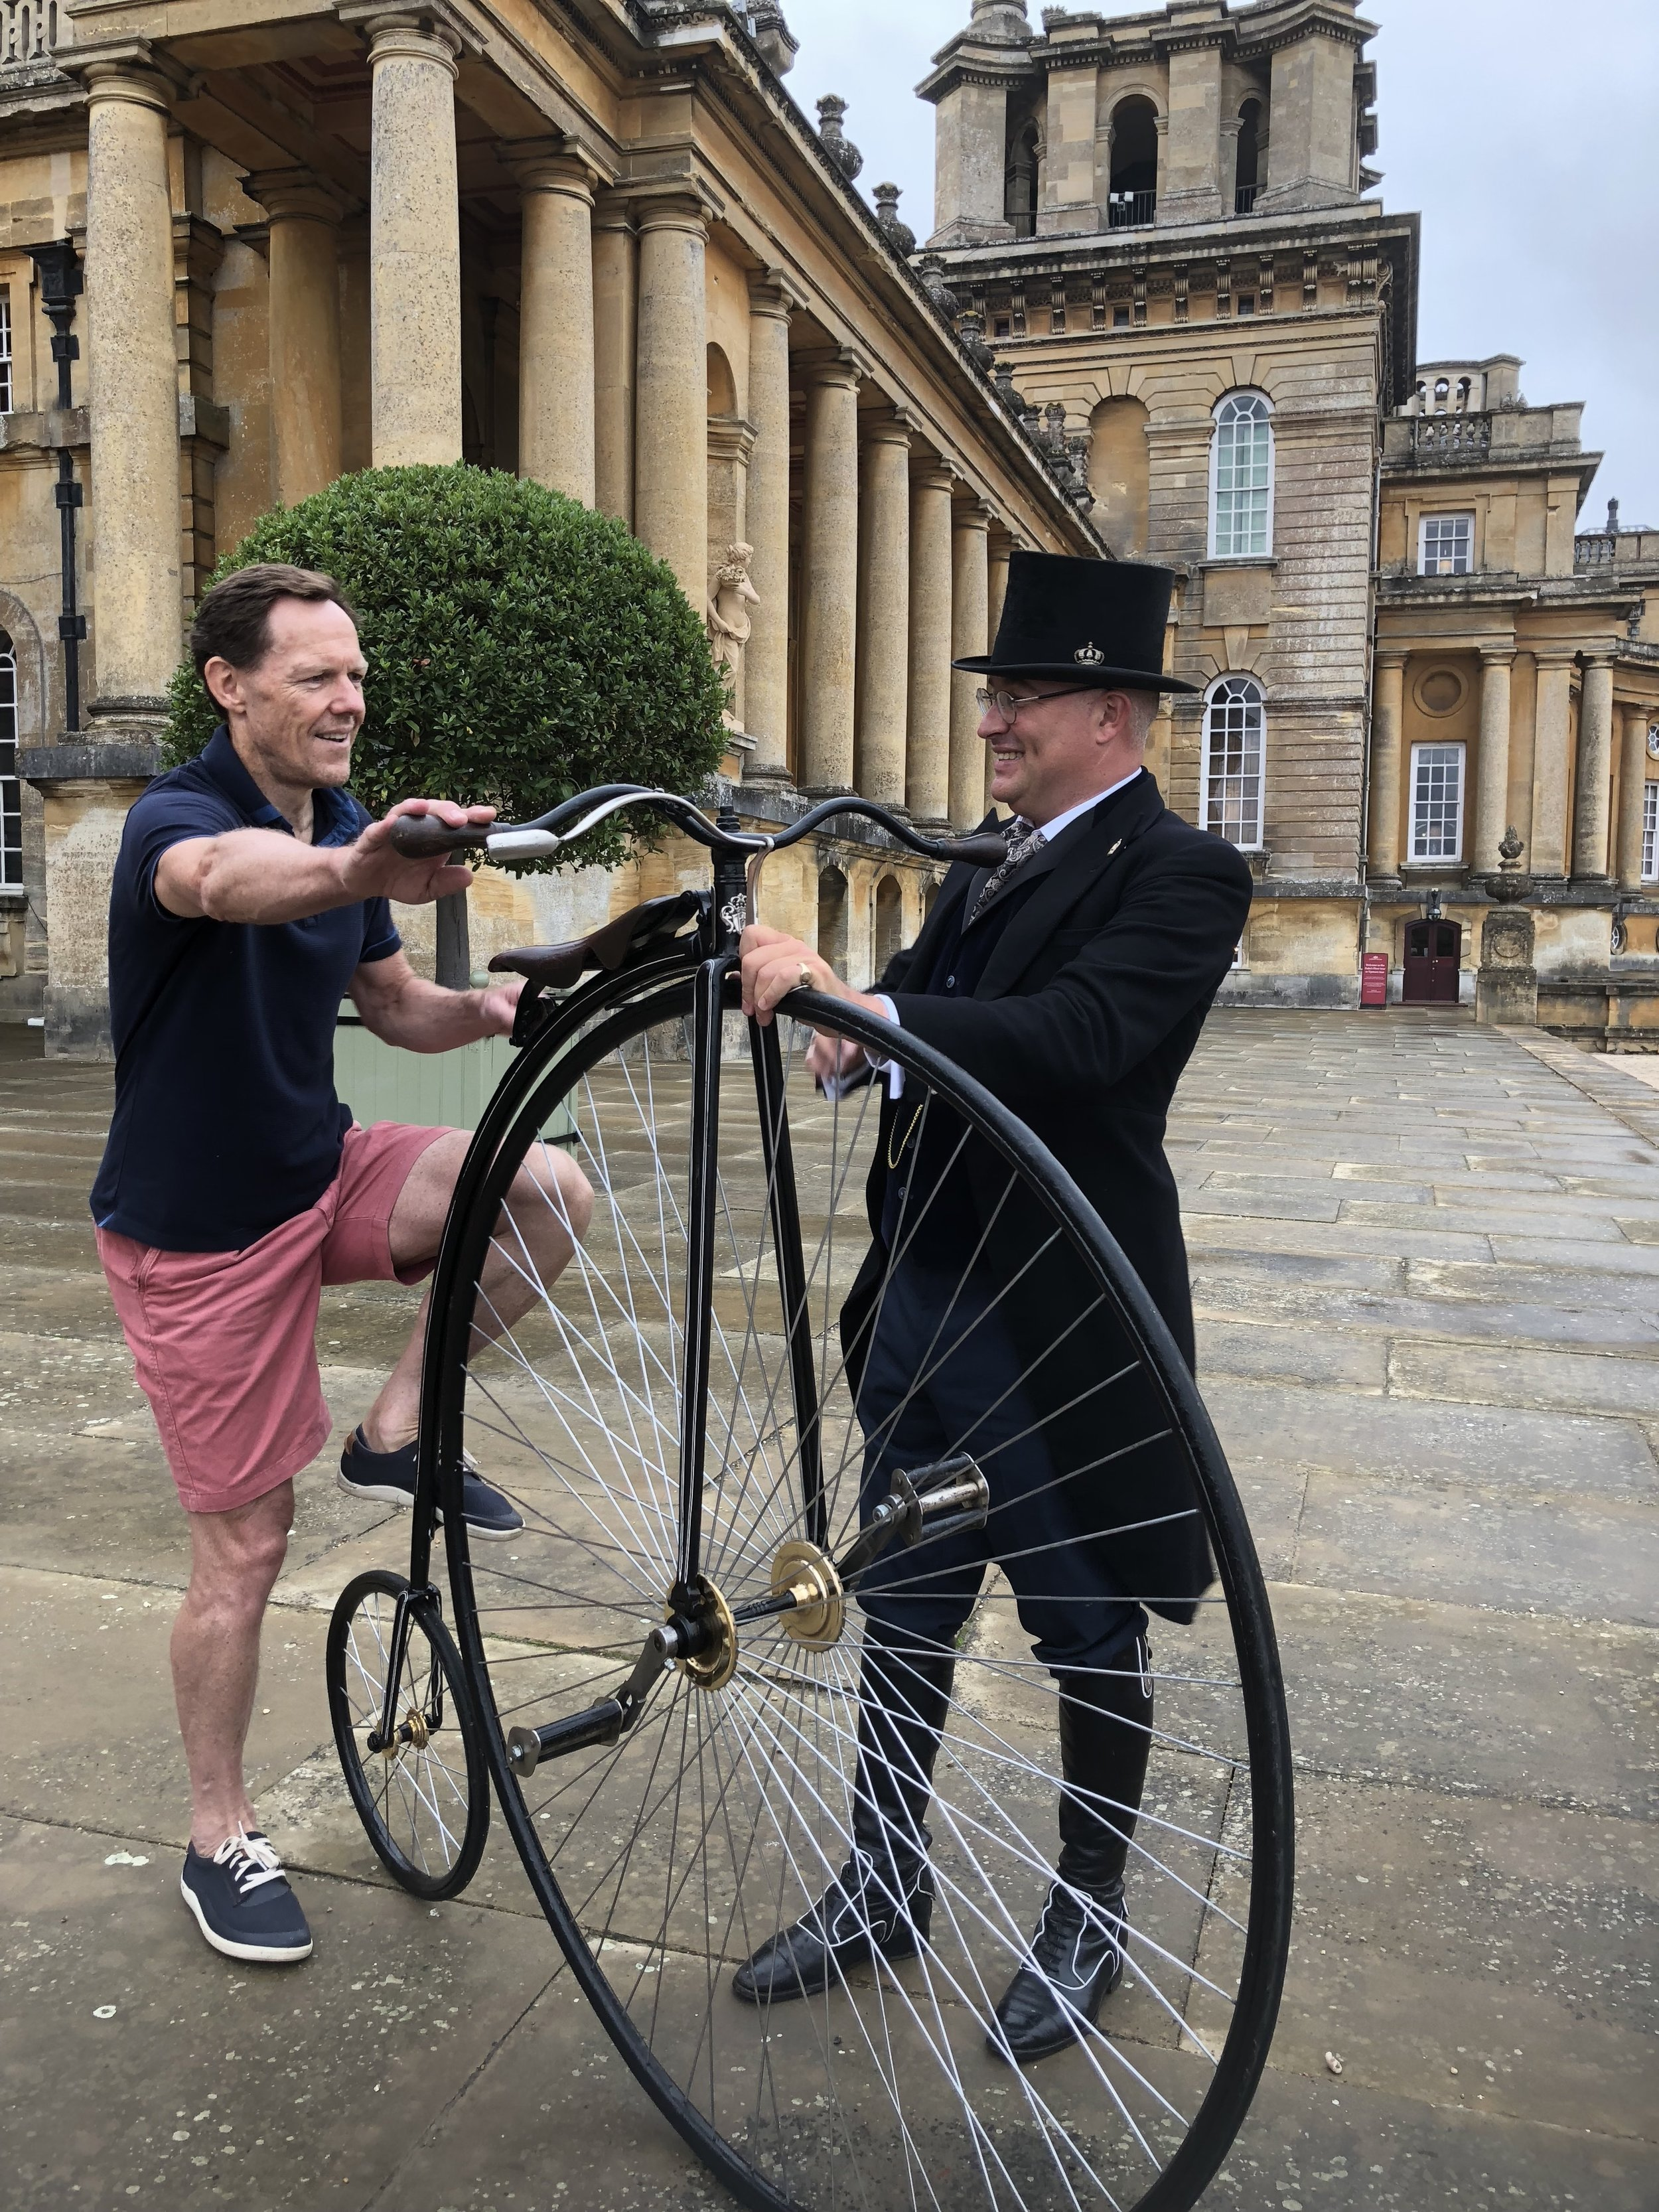 ULTIMATELY FUN - Ultimately the whole experience is about fun through learning. With the Engagement service, we have plenty of educational excitement, demonstrational thrills and memorable moments that are unique to many events!You don't get the opportunity to mount a Penny Farthing everyday (if ever), and so for all that do we give a smal certificate to take home.Both Adults and Children (with Parents Help) are encouraged to sit up high!.. for many this will be a chance of a lifetime - for Mr Phoebus, it's what we do, and we like to show we do it well.